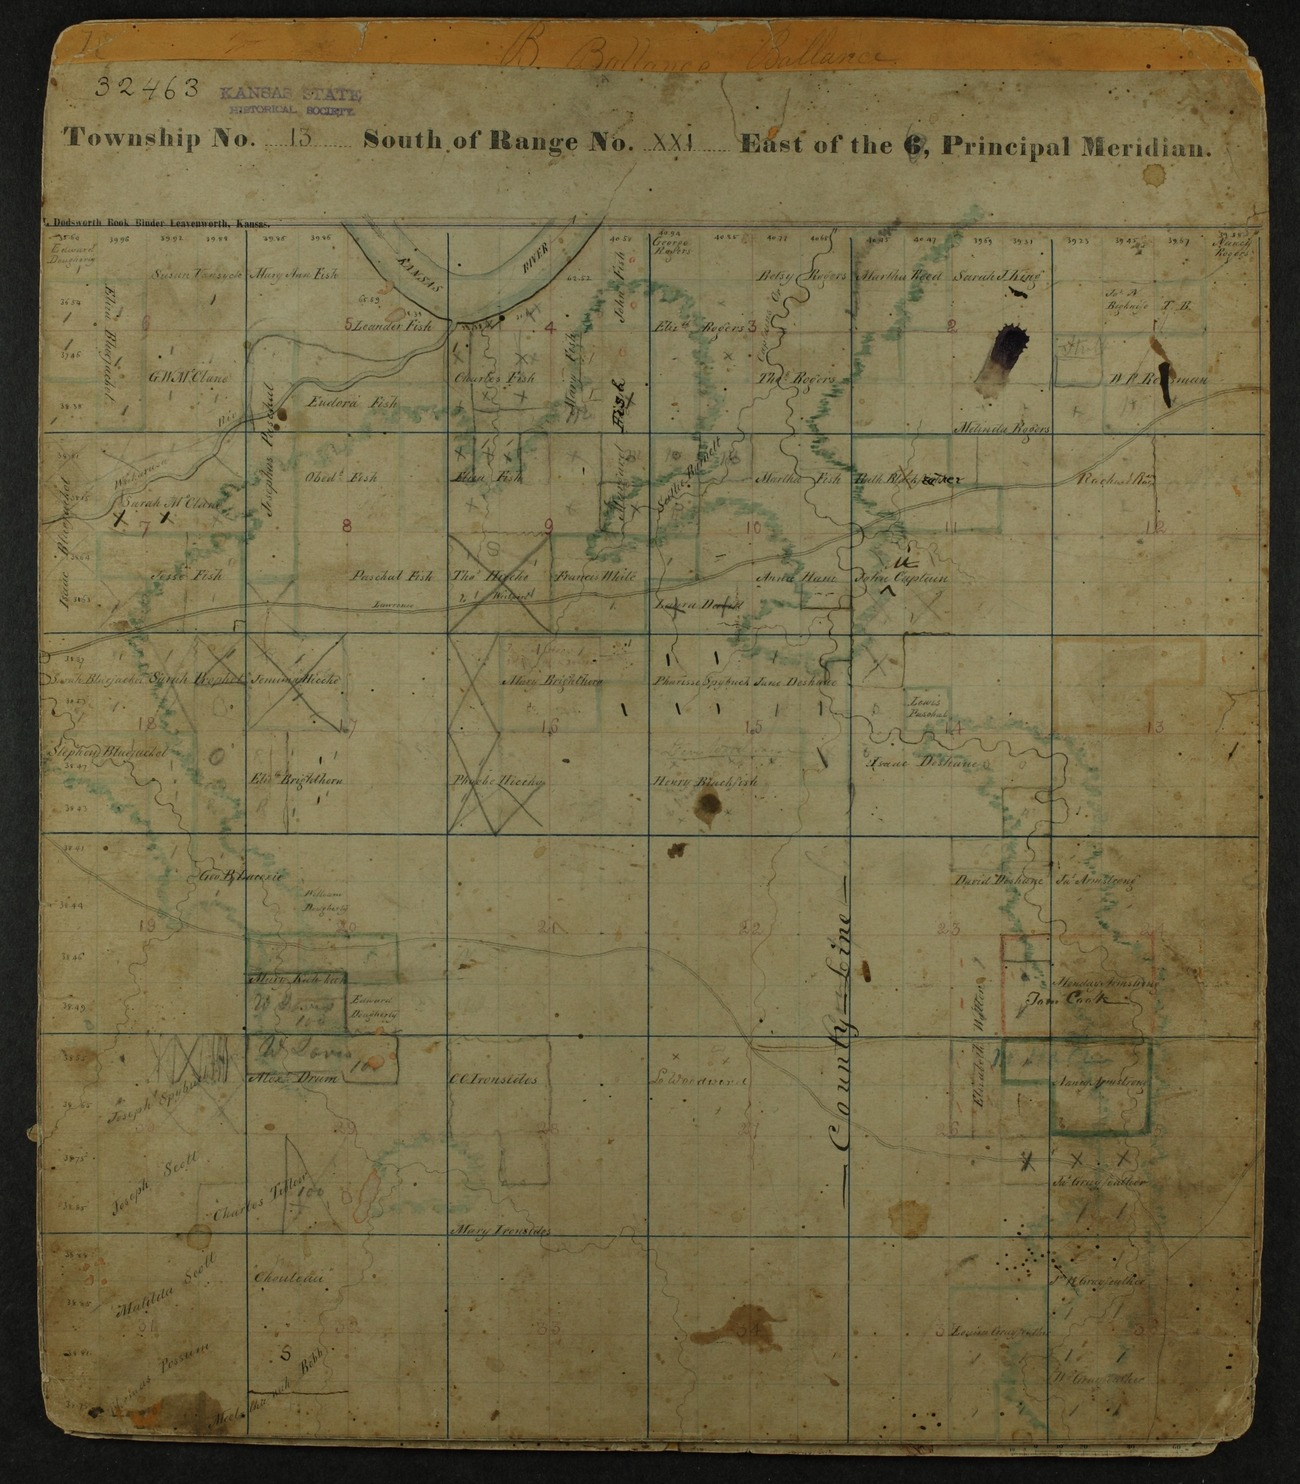 Shawnee Indian reservation plat maps of 1854 - 6